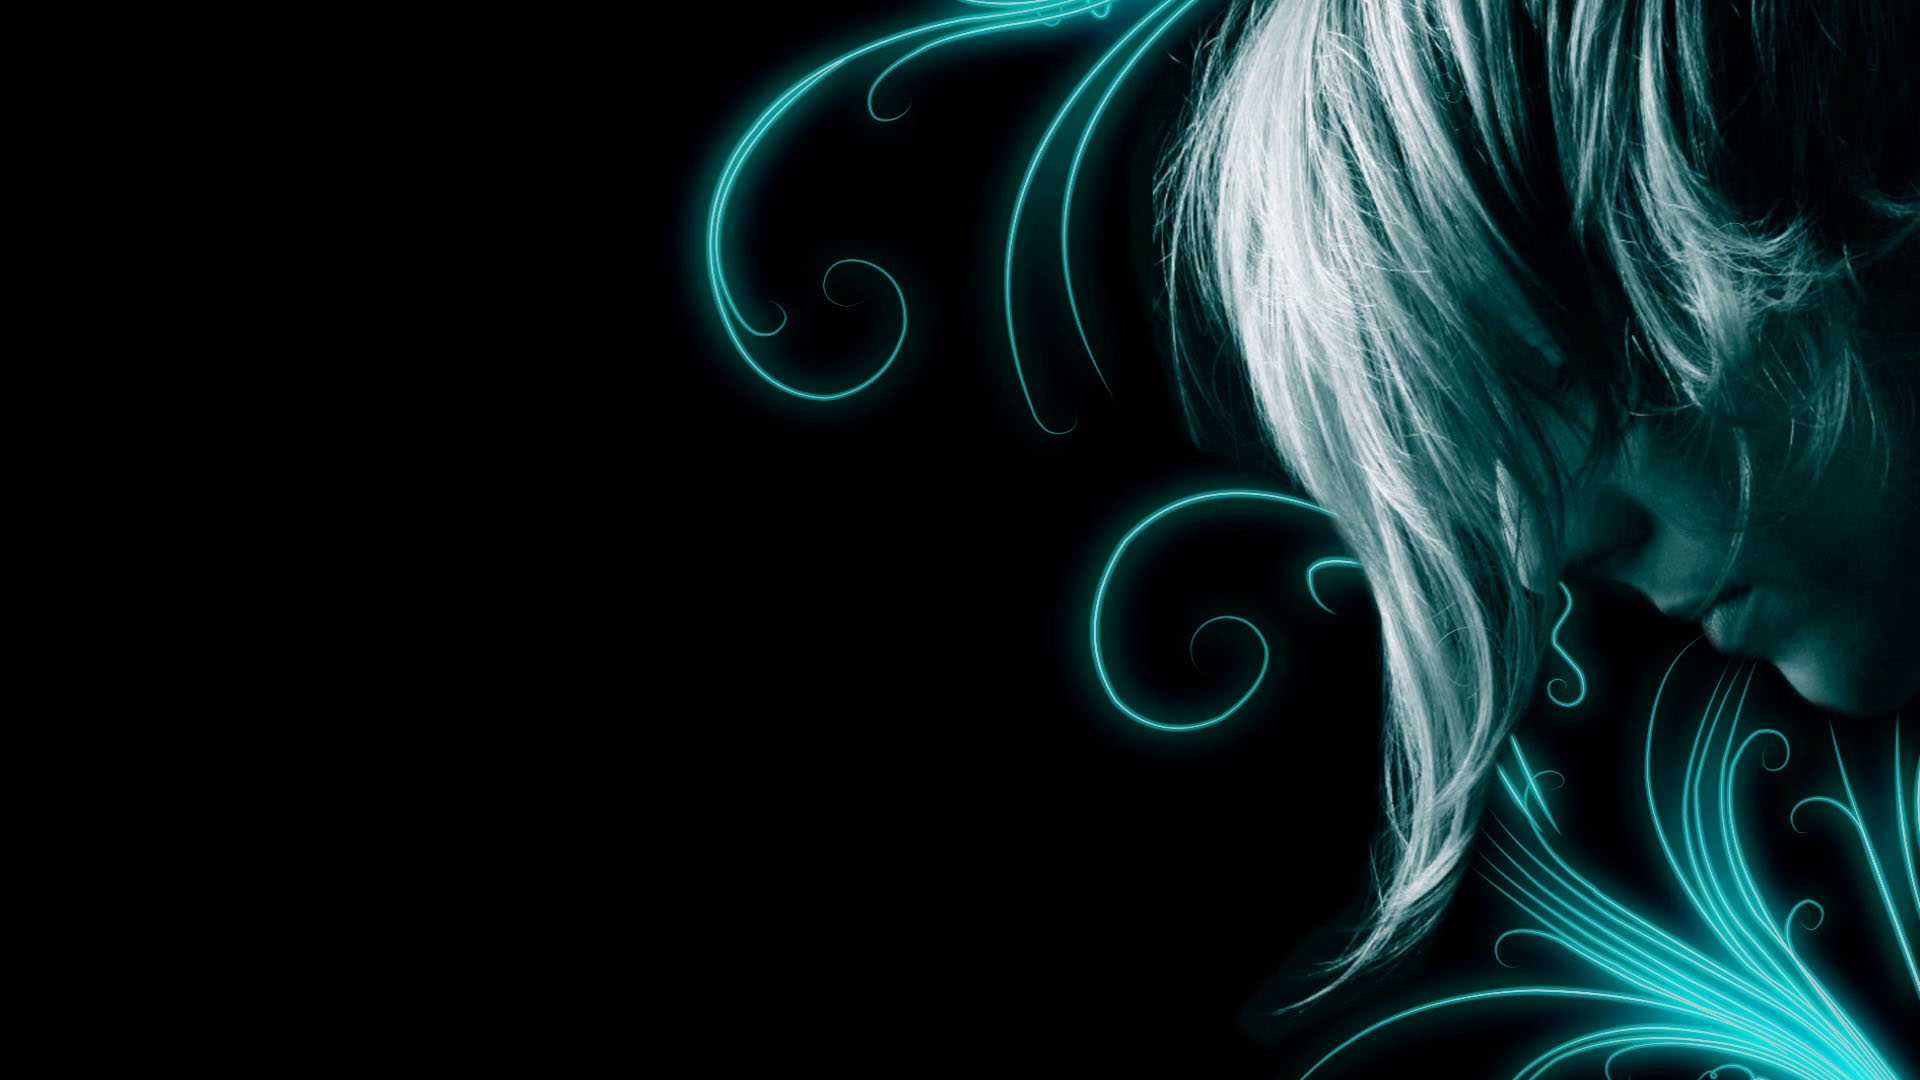 cool teal wallpapers - photo #4